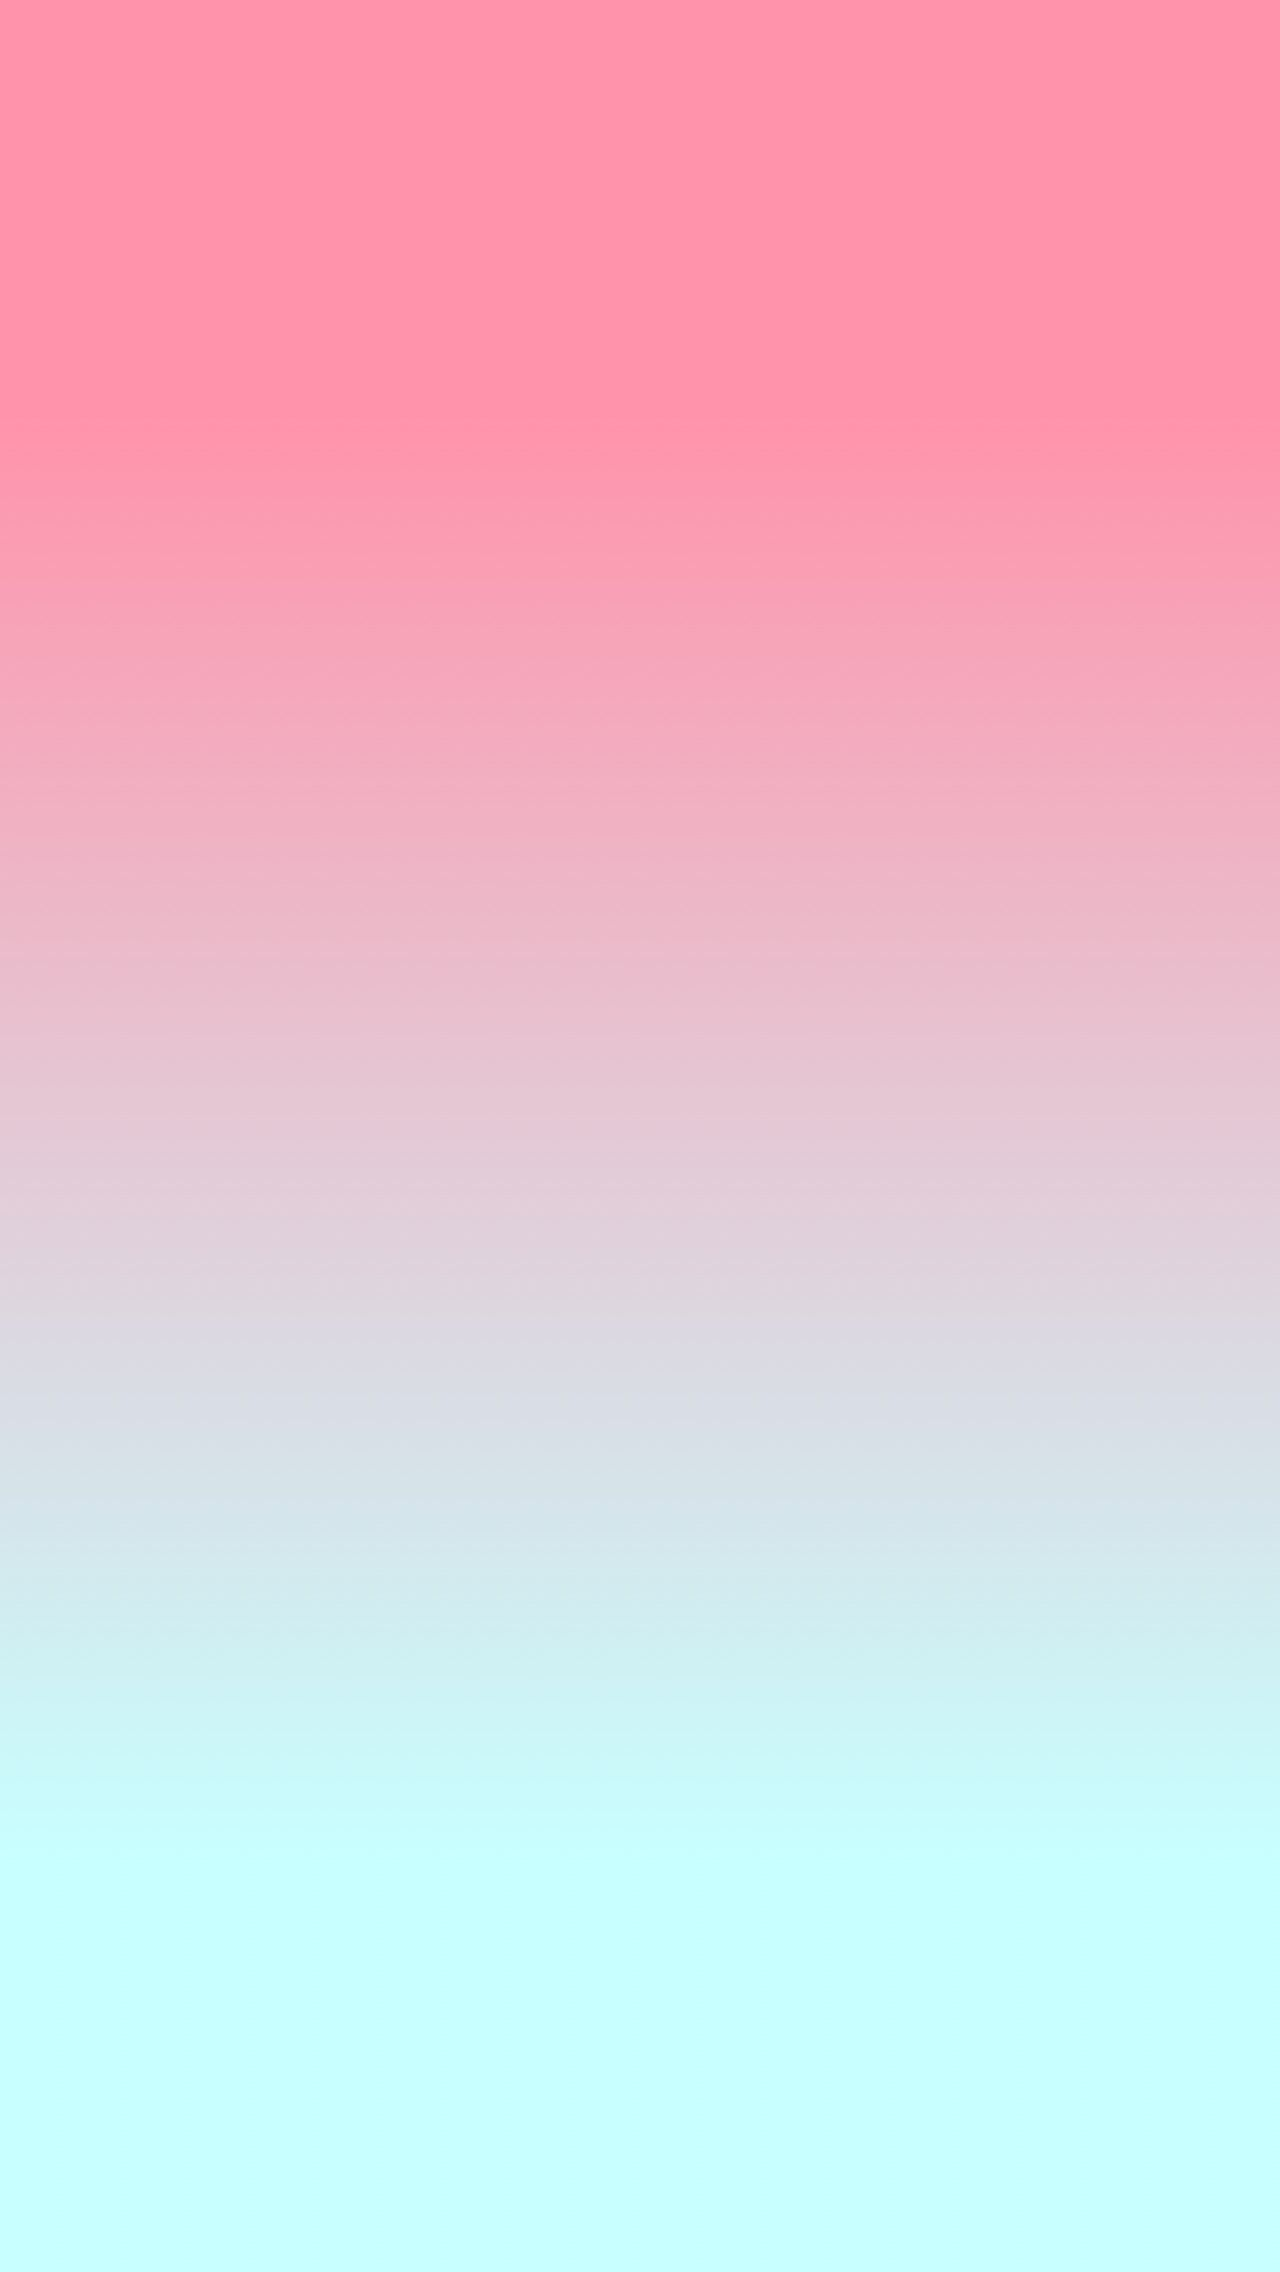 Blue And Pink Ombre Wallpaper Wallpapersafari